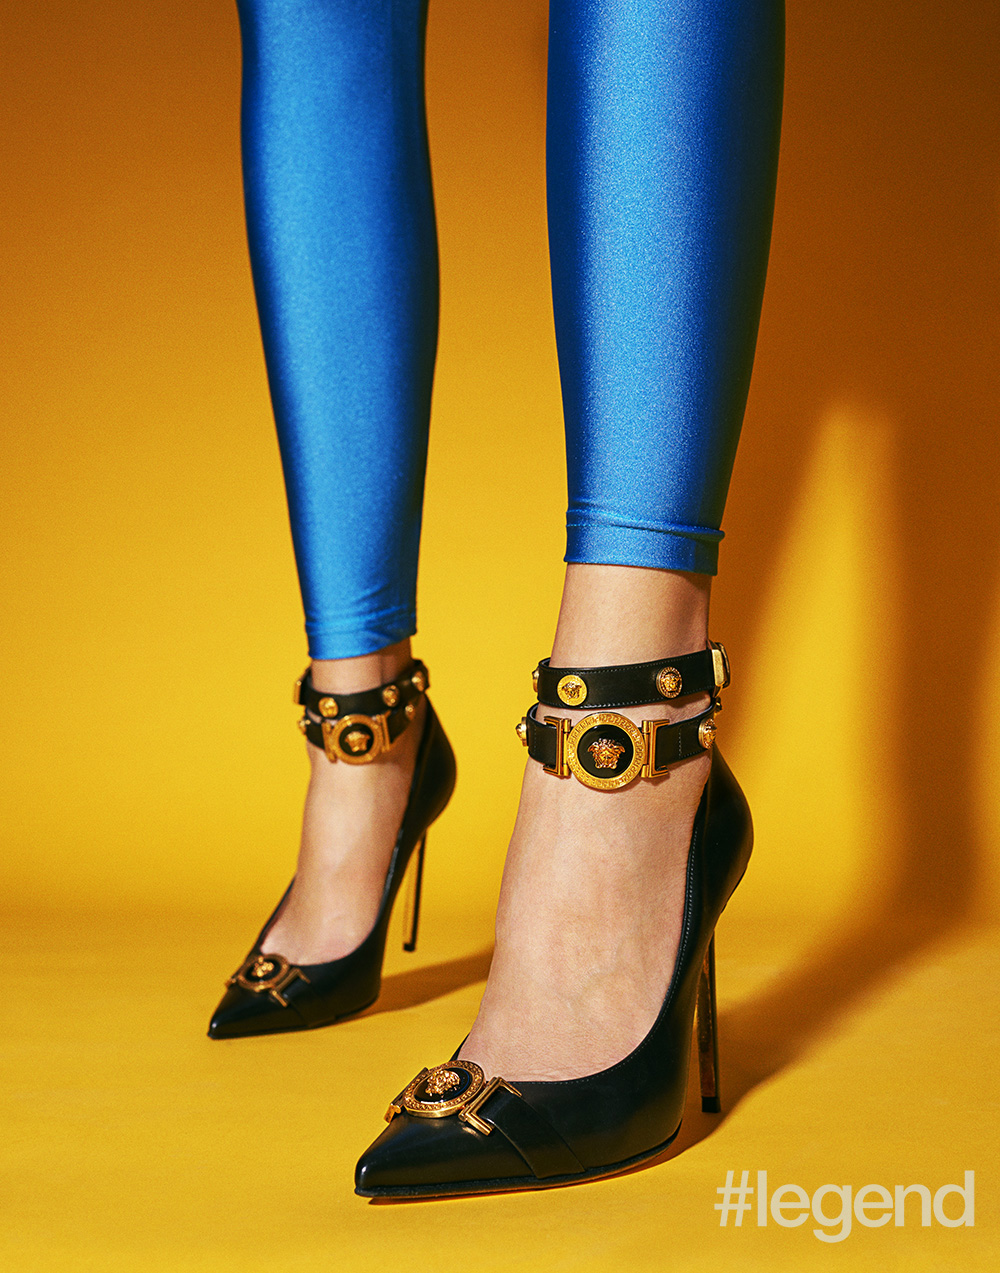 Shoes by Versace and leggings are stylist's own